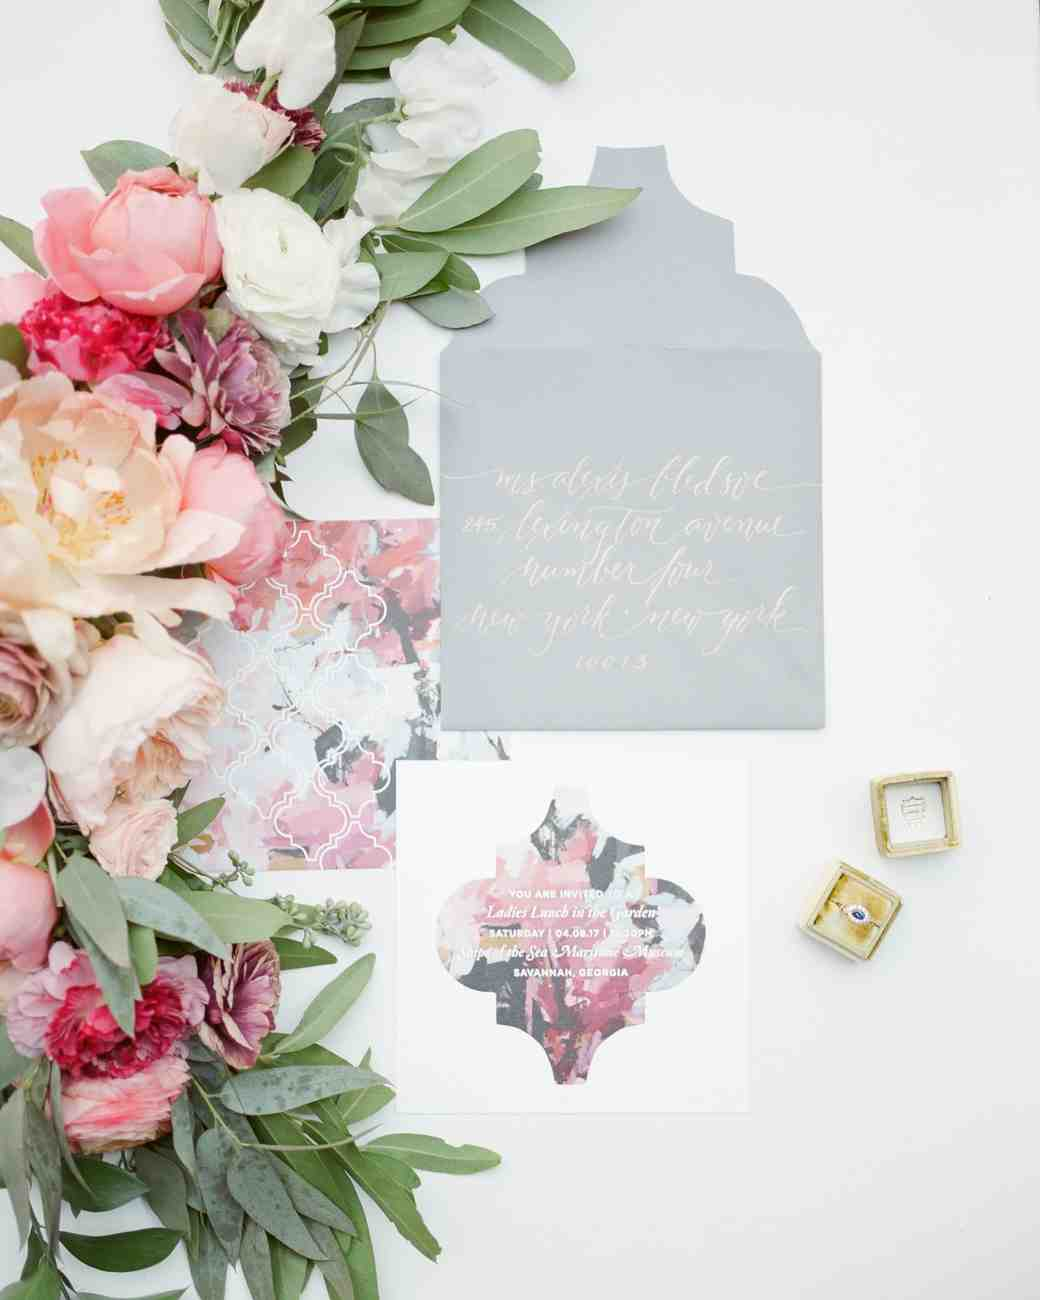 Gray and pink floral invitation suite with bright pink floral garland